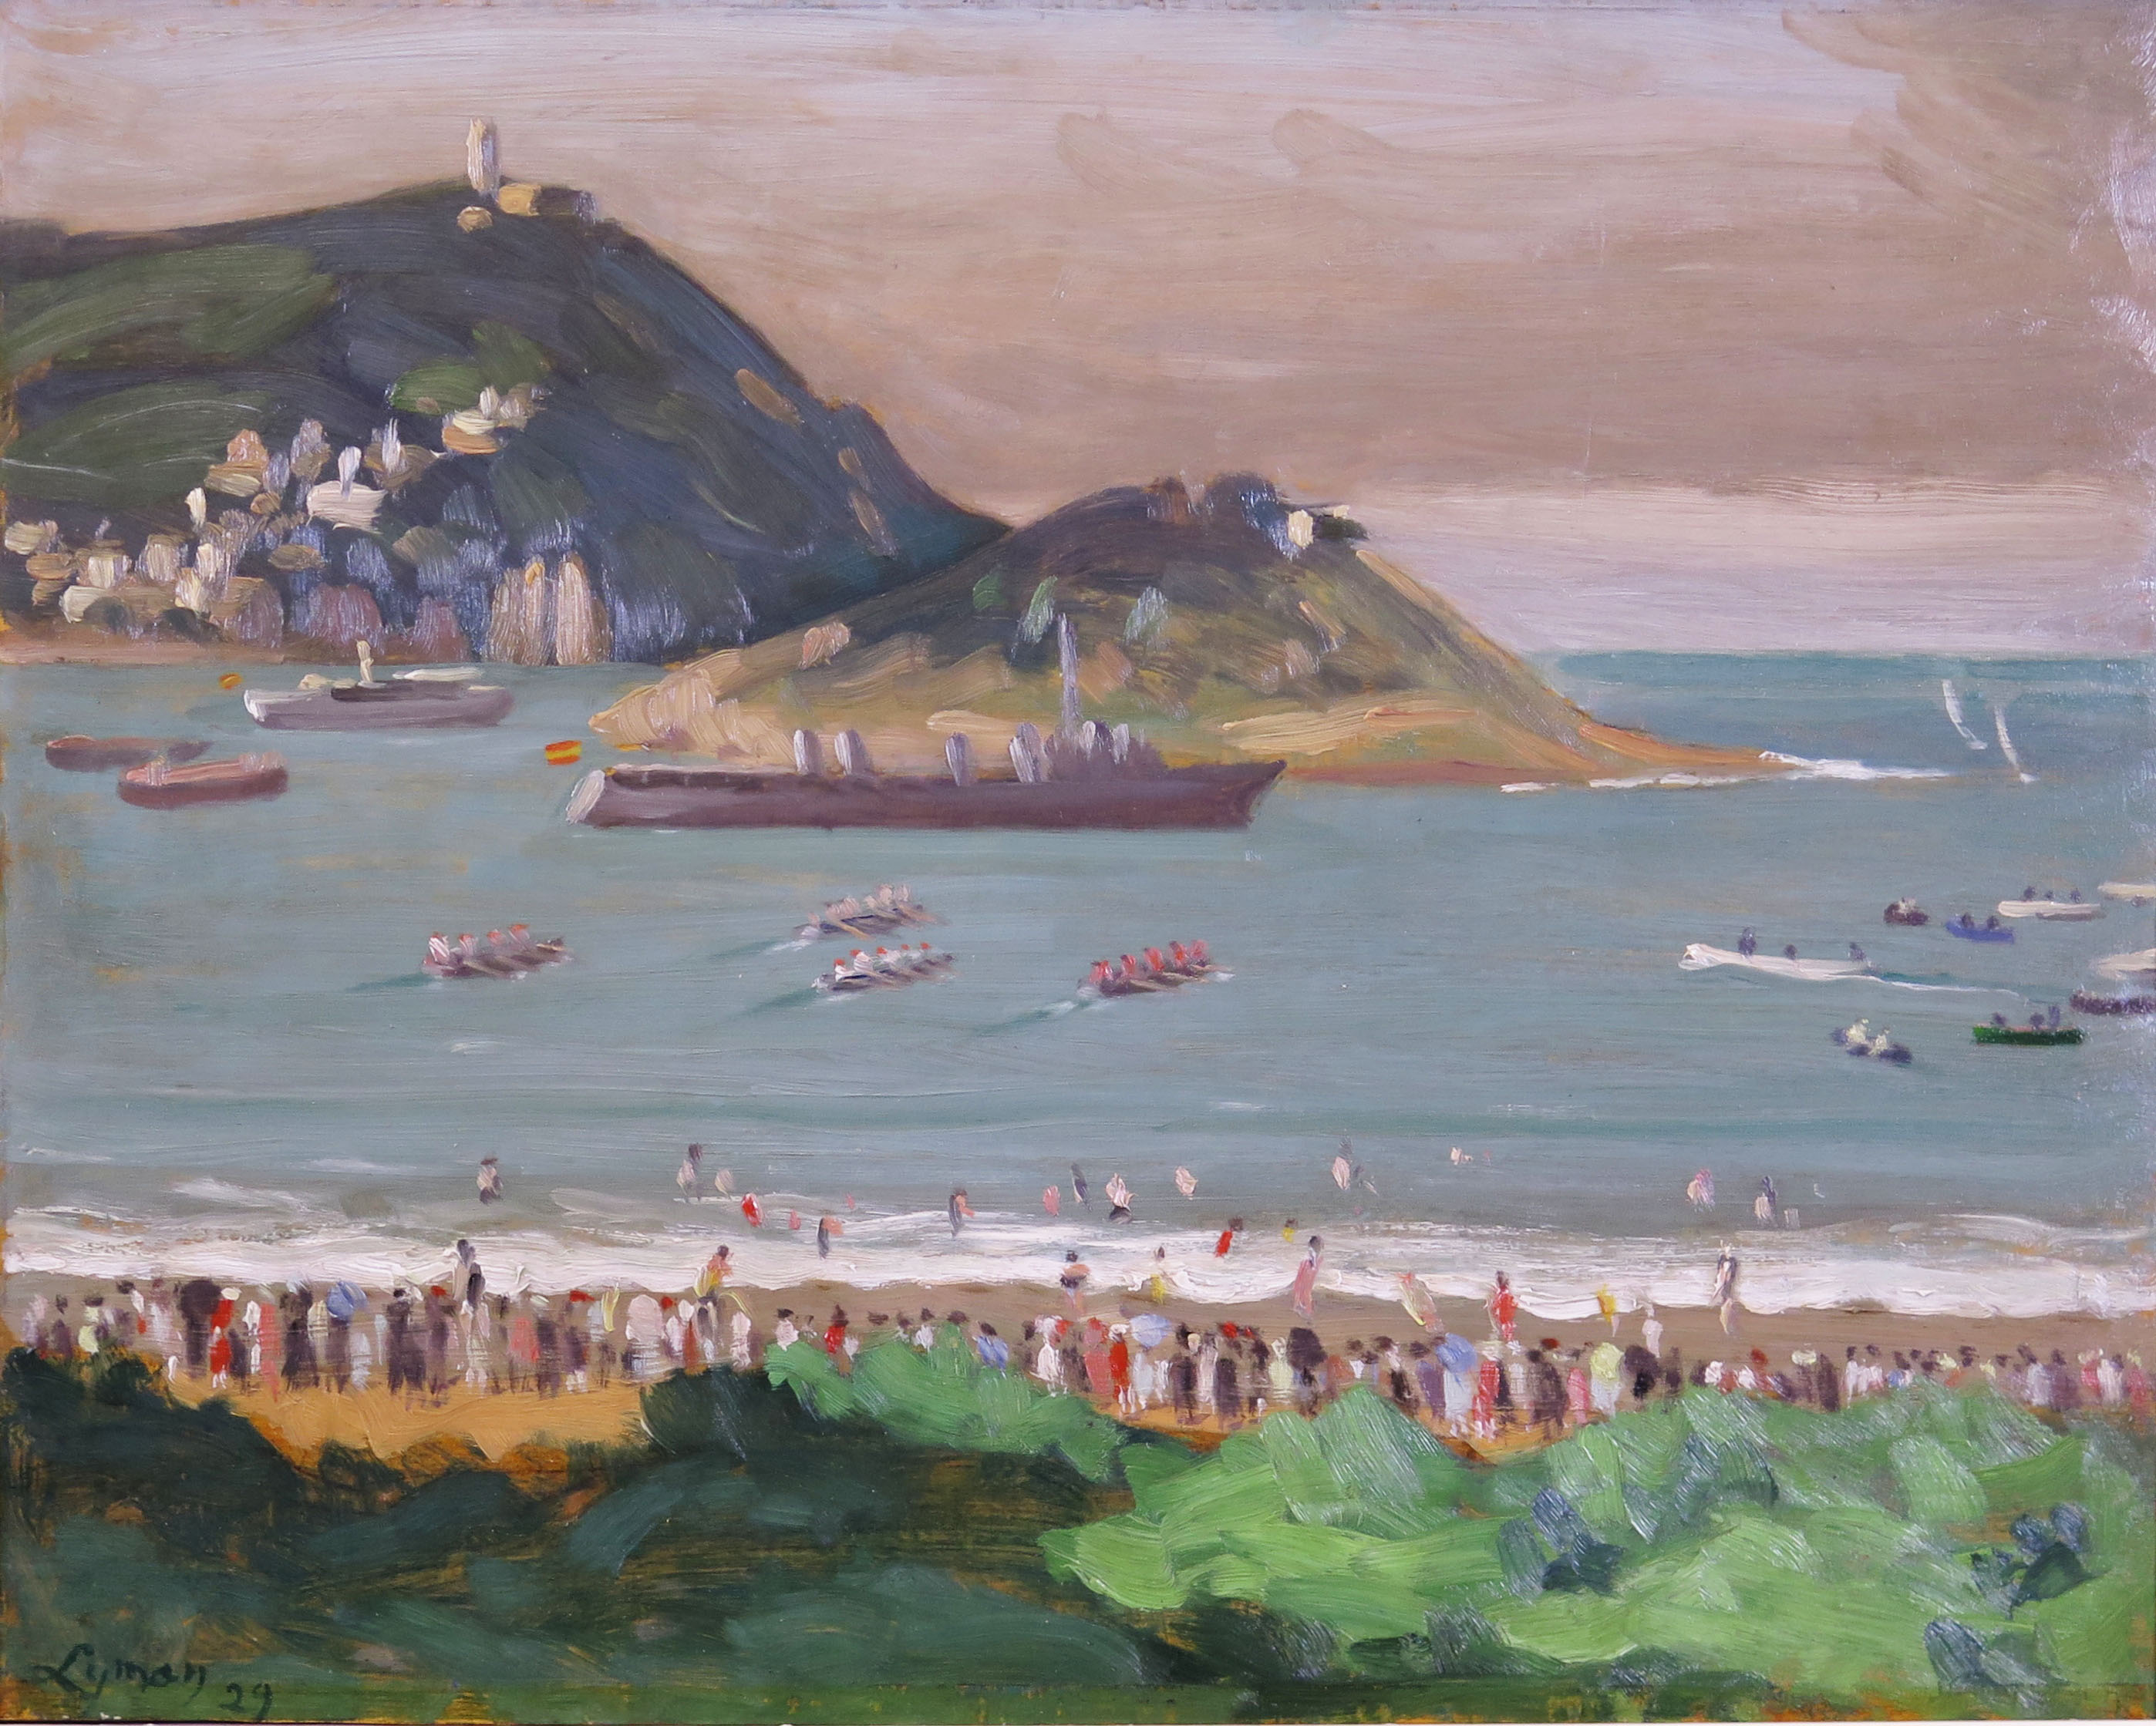 John Lyman, 'Regatta at San Sebastian', 1929, oil on panel 12 3/4 x 16 ins. (Sold)